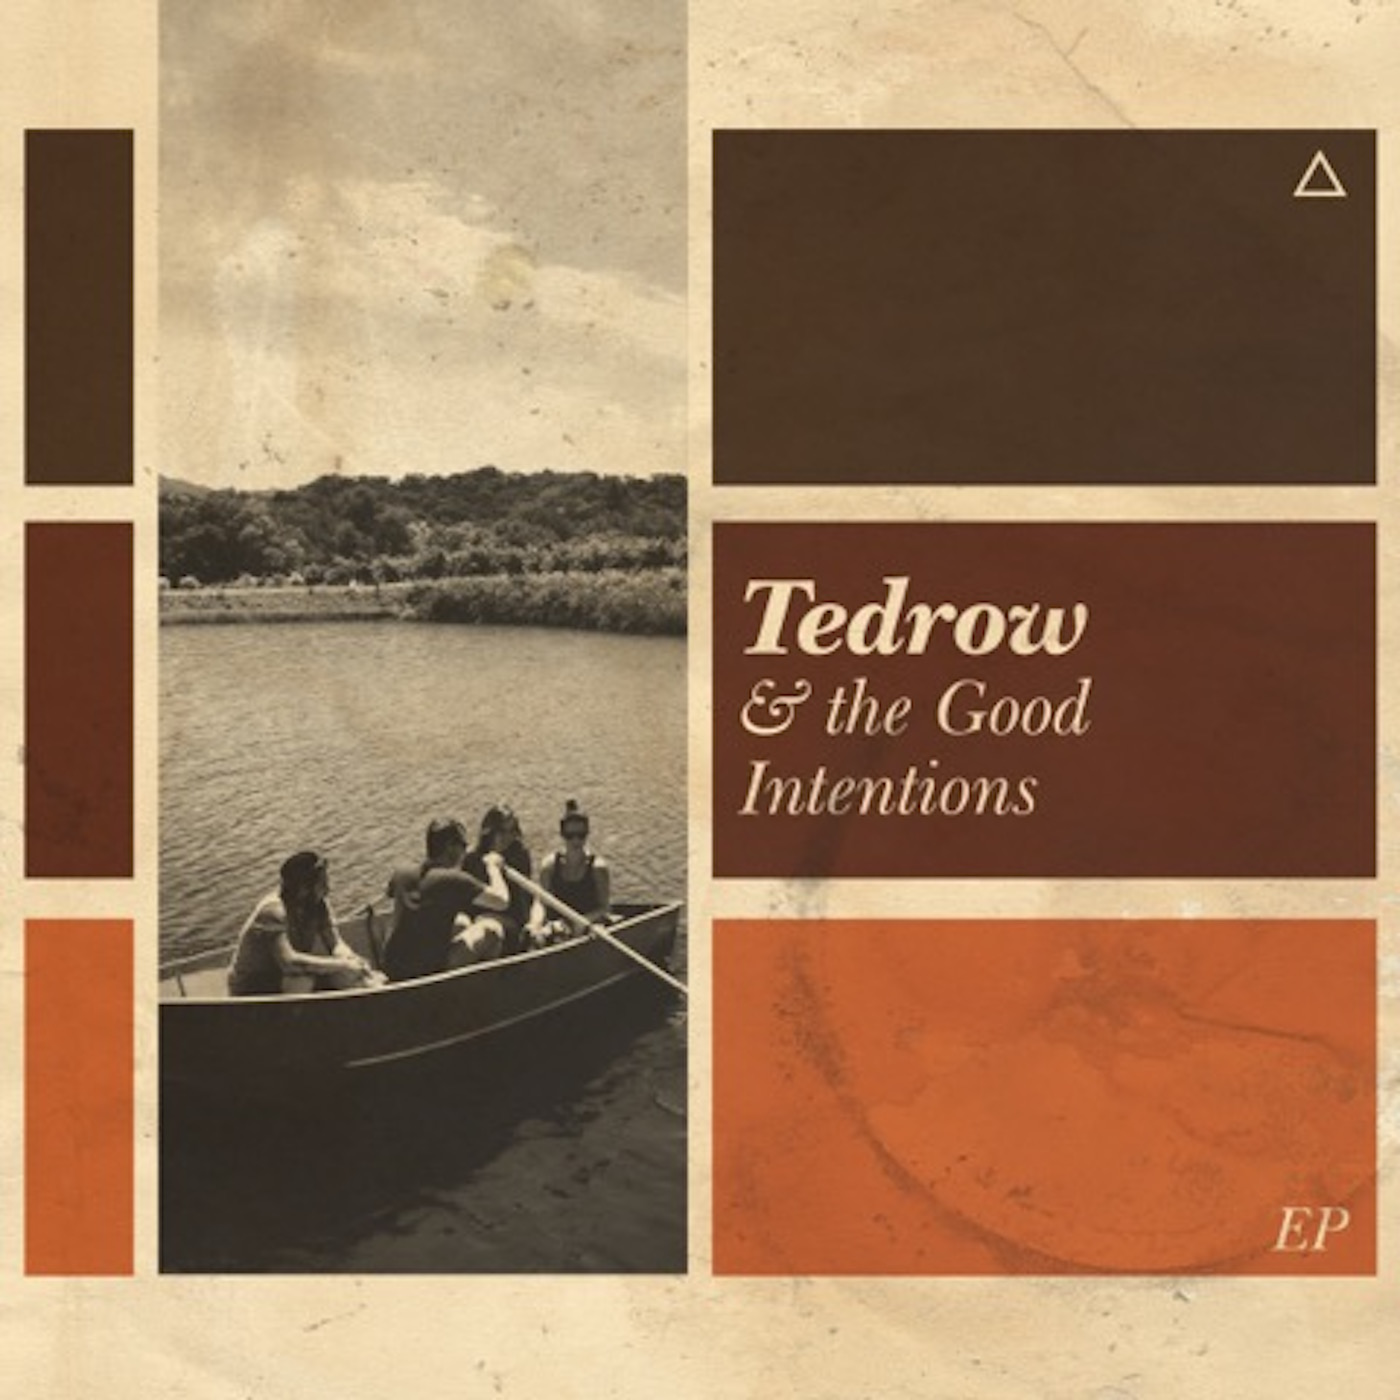 Tedrow & the Good Intentions